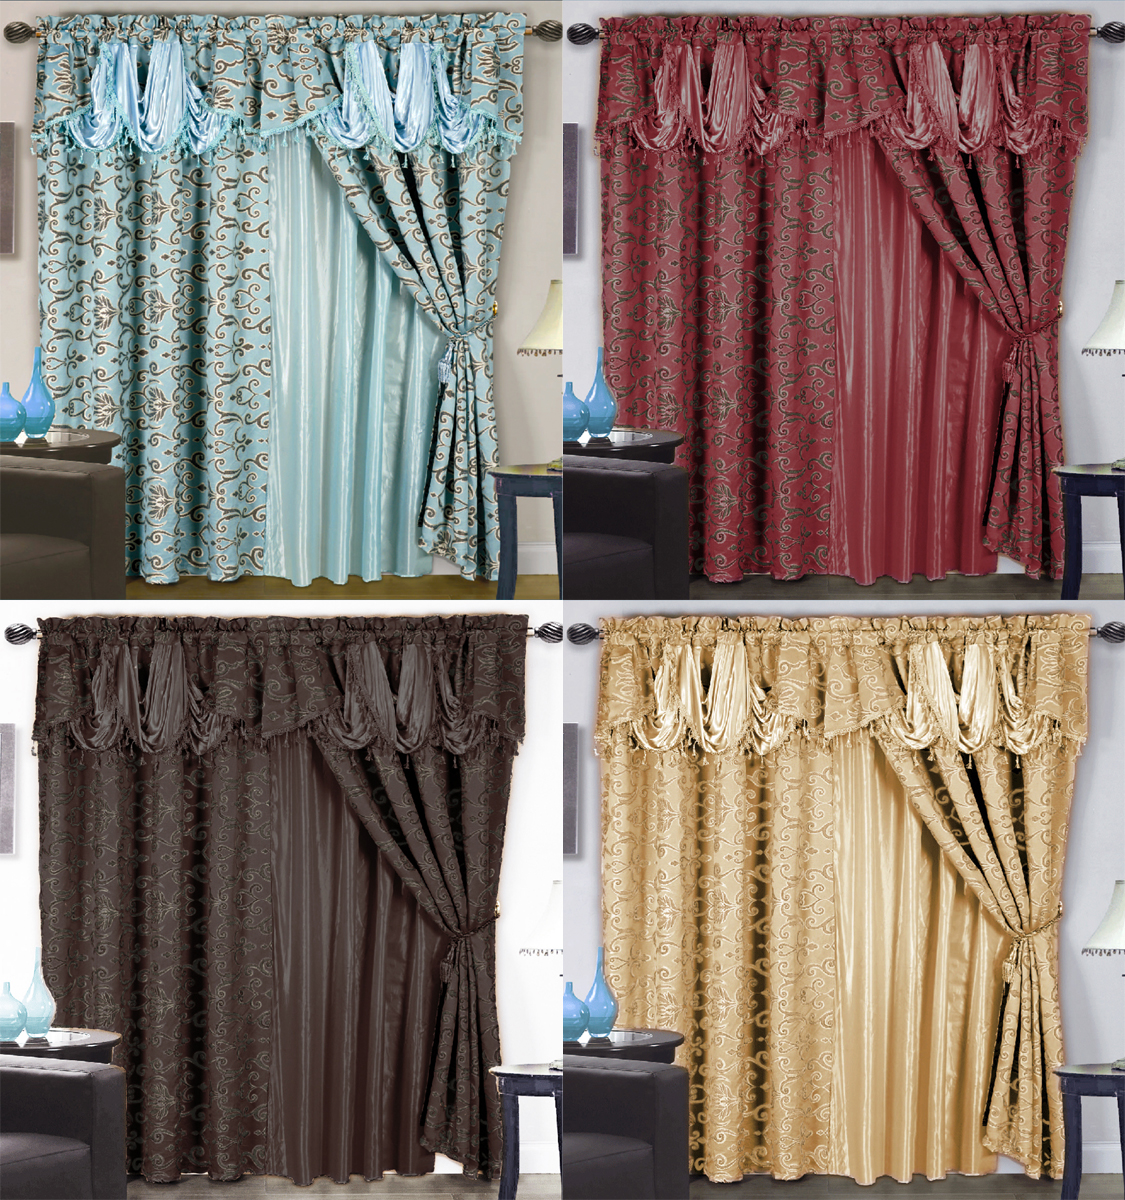 waterfall rod pocket at allen polyester in pd valances roth valance shop rust emilia